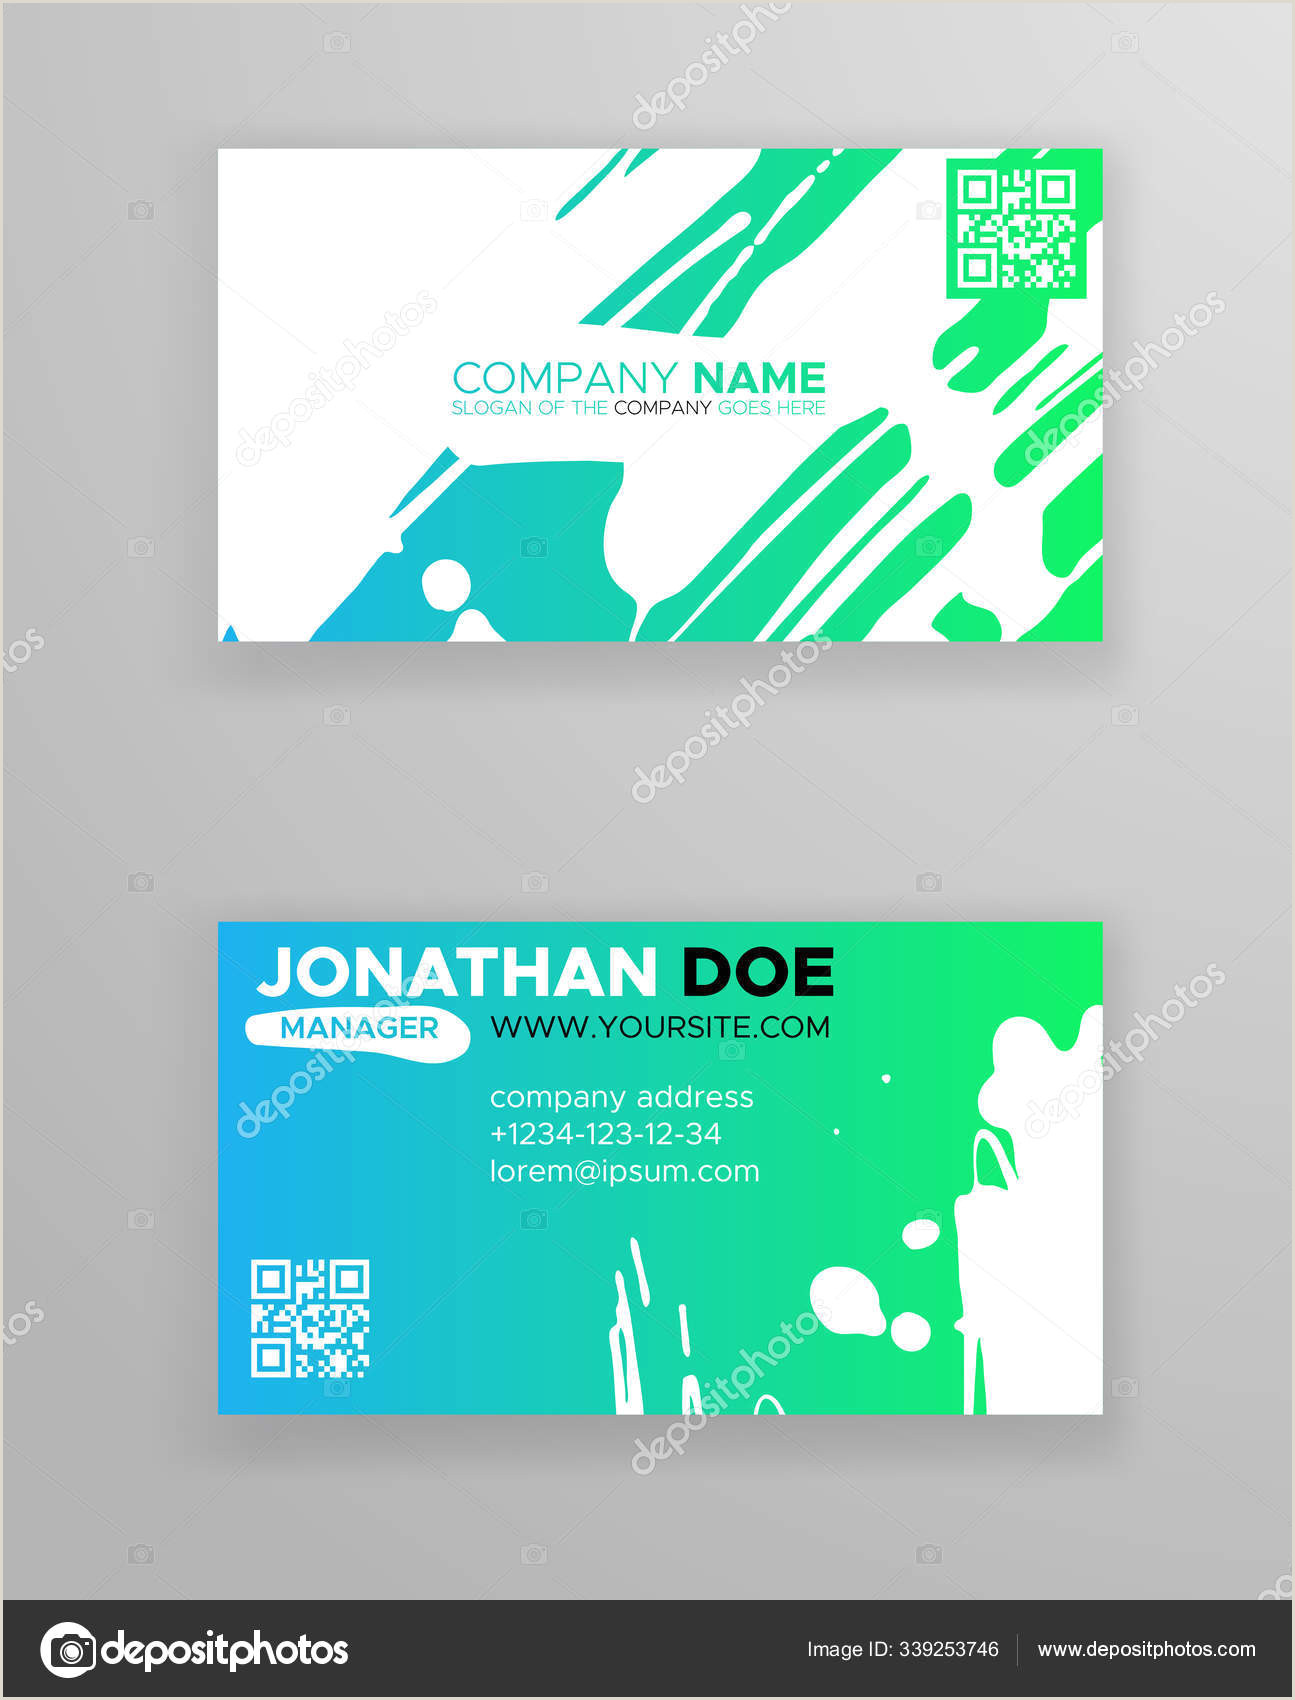 Creative Unique Painting Business Cards Creative Color Business Card Templates With Minimalistic Design Abstract Ink Brush Strokes